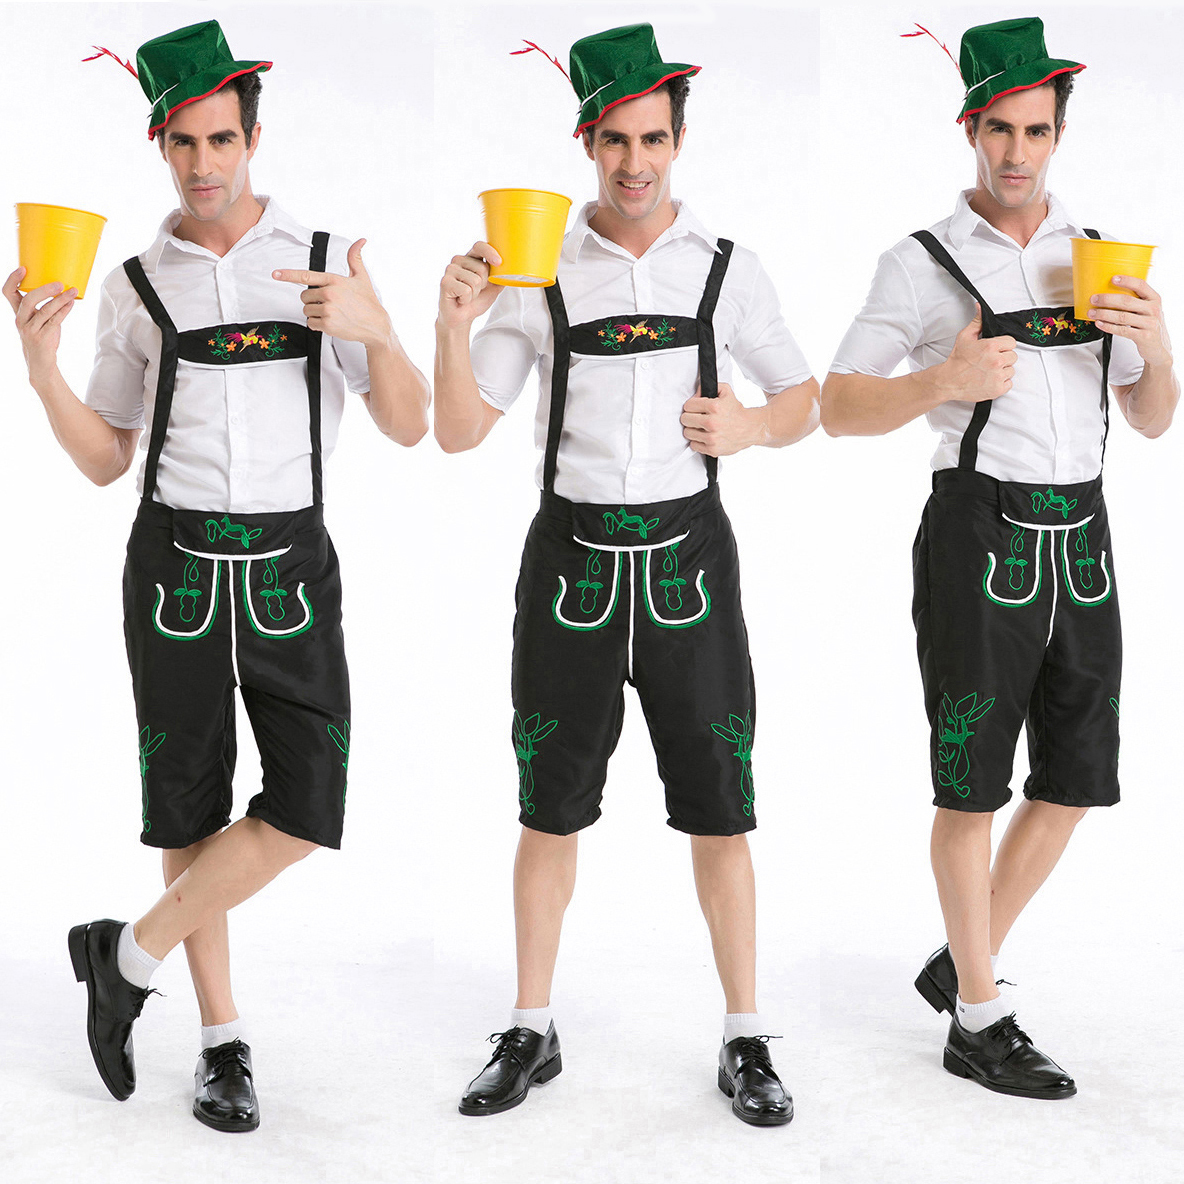 2d16b0c5004 Details about Mens Lederhosen Oktoberfest Bavarian German Beer Festival  Costume Fancy Outfit